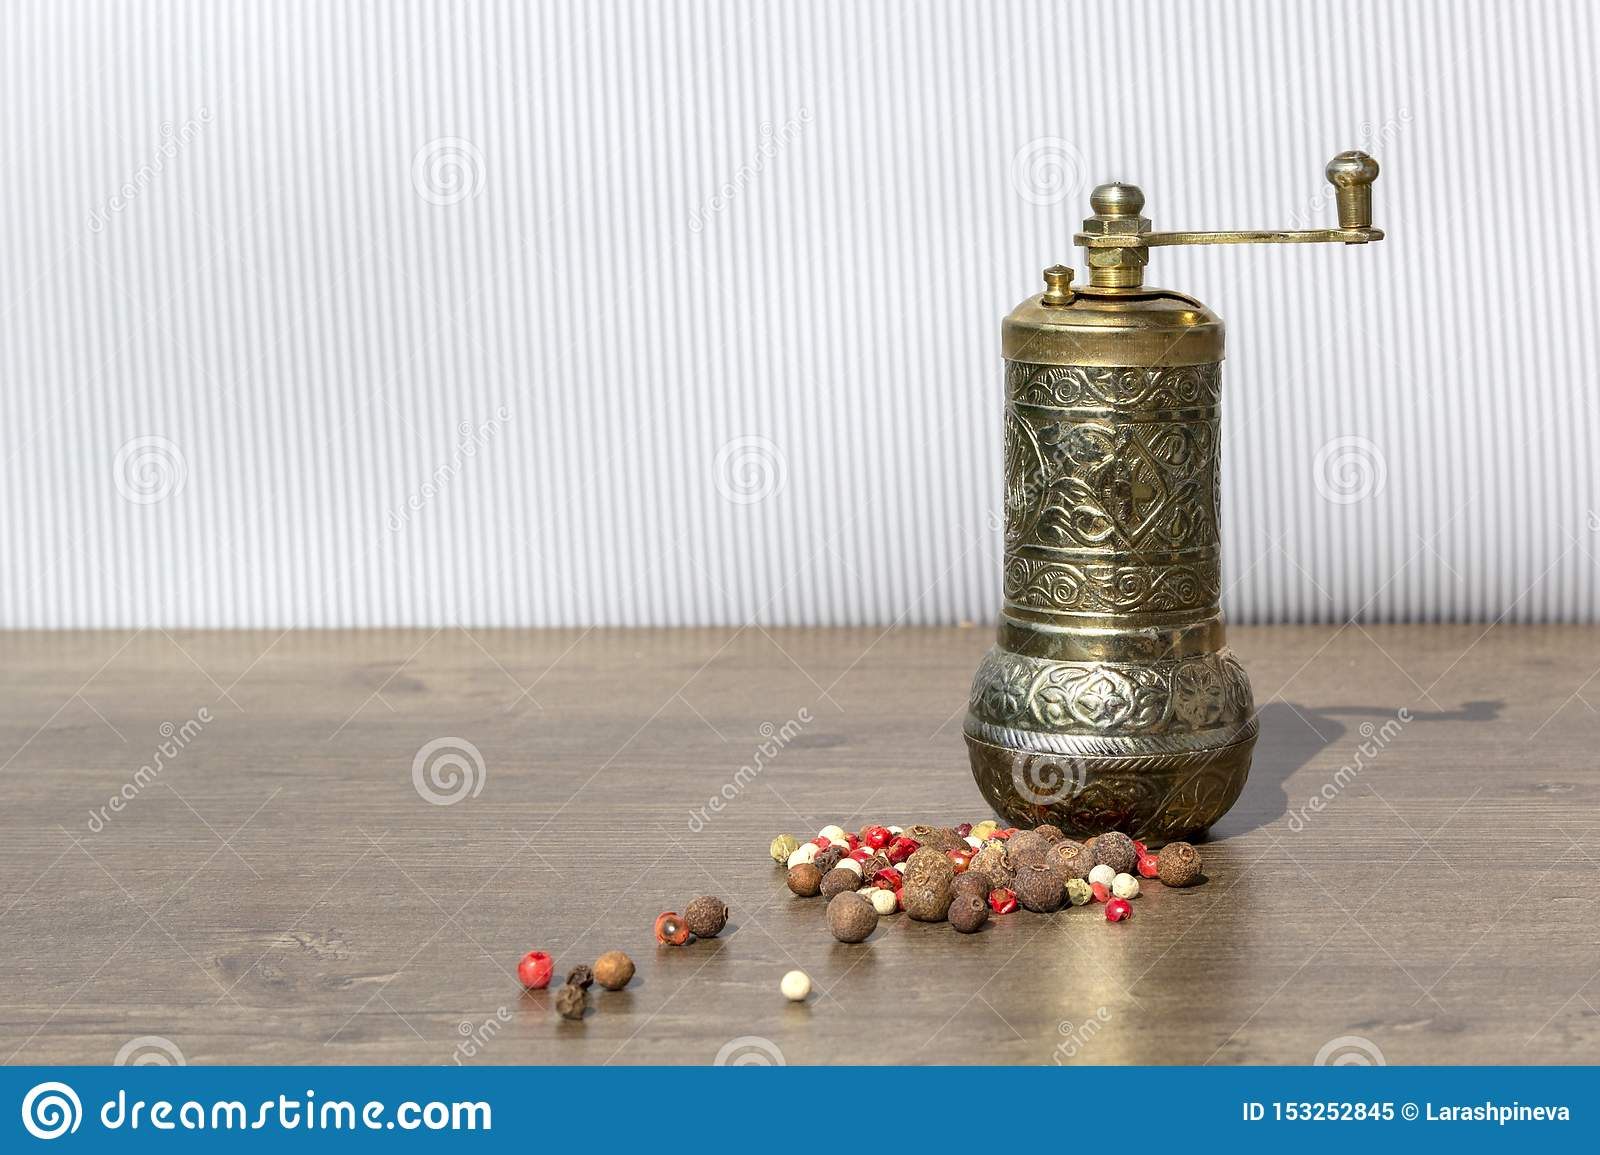 Vintage mill for pepper with black peppercorns and allspice on wooden table. Kitchen appliances for grinding spices and salt